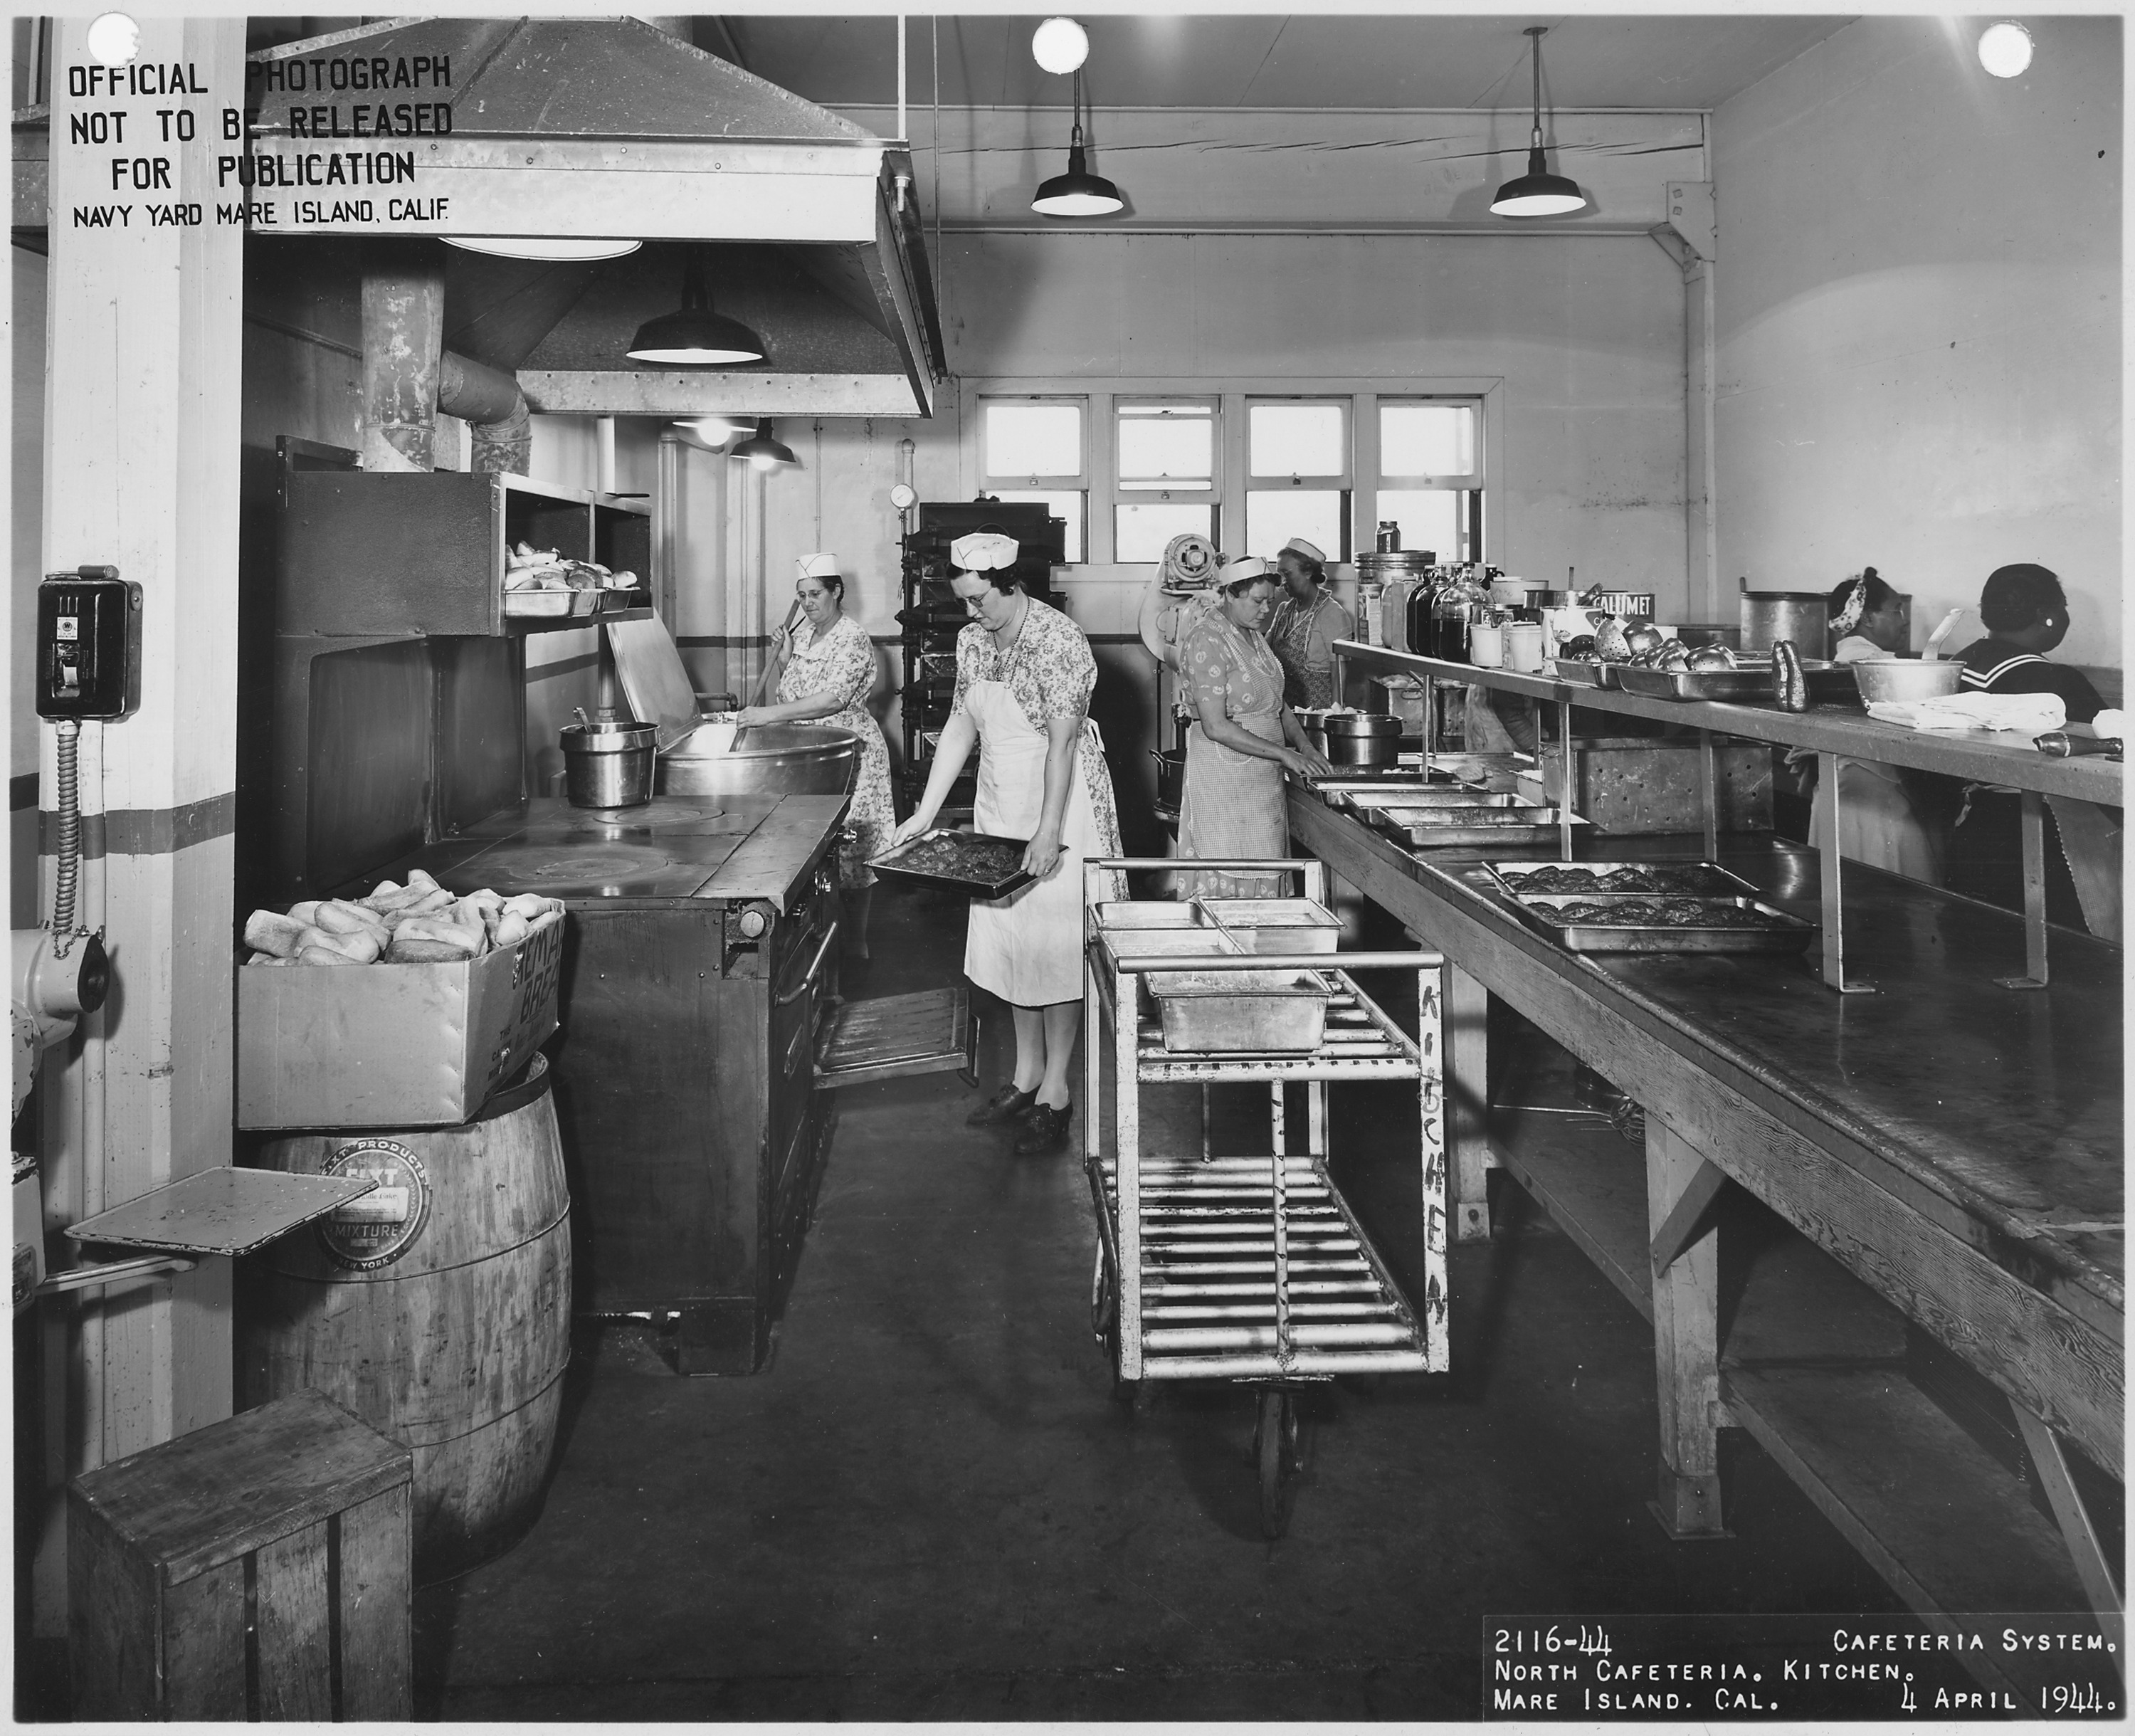 FileCafeteria System North Cafeteria Kitchen US Navy